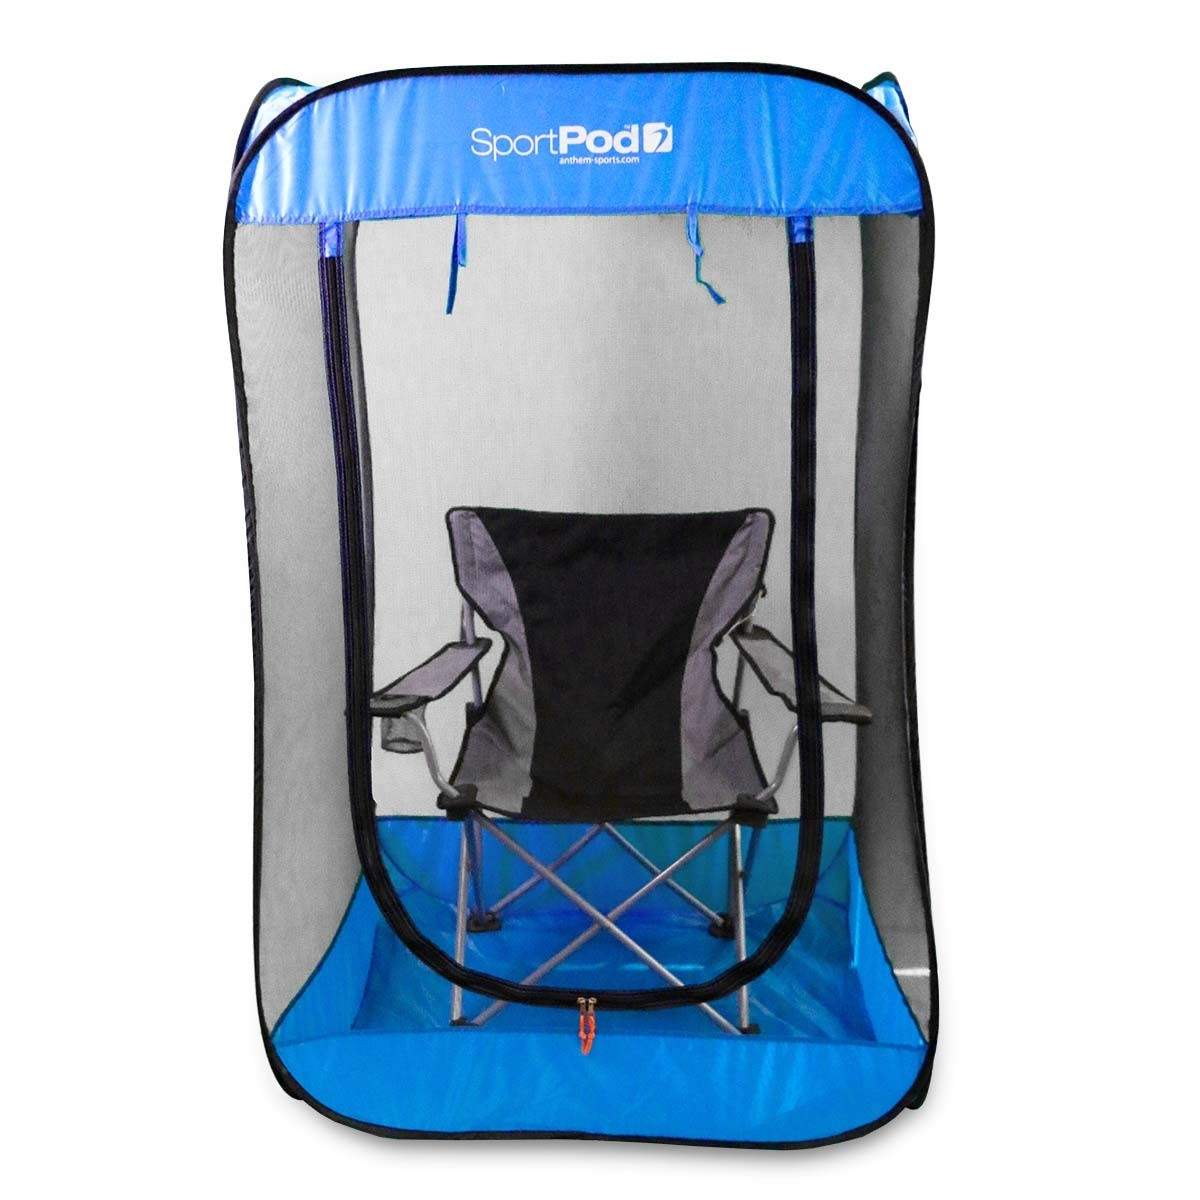 ... Pop Up Insect Screen Tent. CHAIR NOT INCLUDED CHAIR NOT INCLUDED  sc 1 st  Anthem Sports & BugPod™ UnderCover™ SportPod™ Pop Up Insect Screen Tent